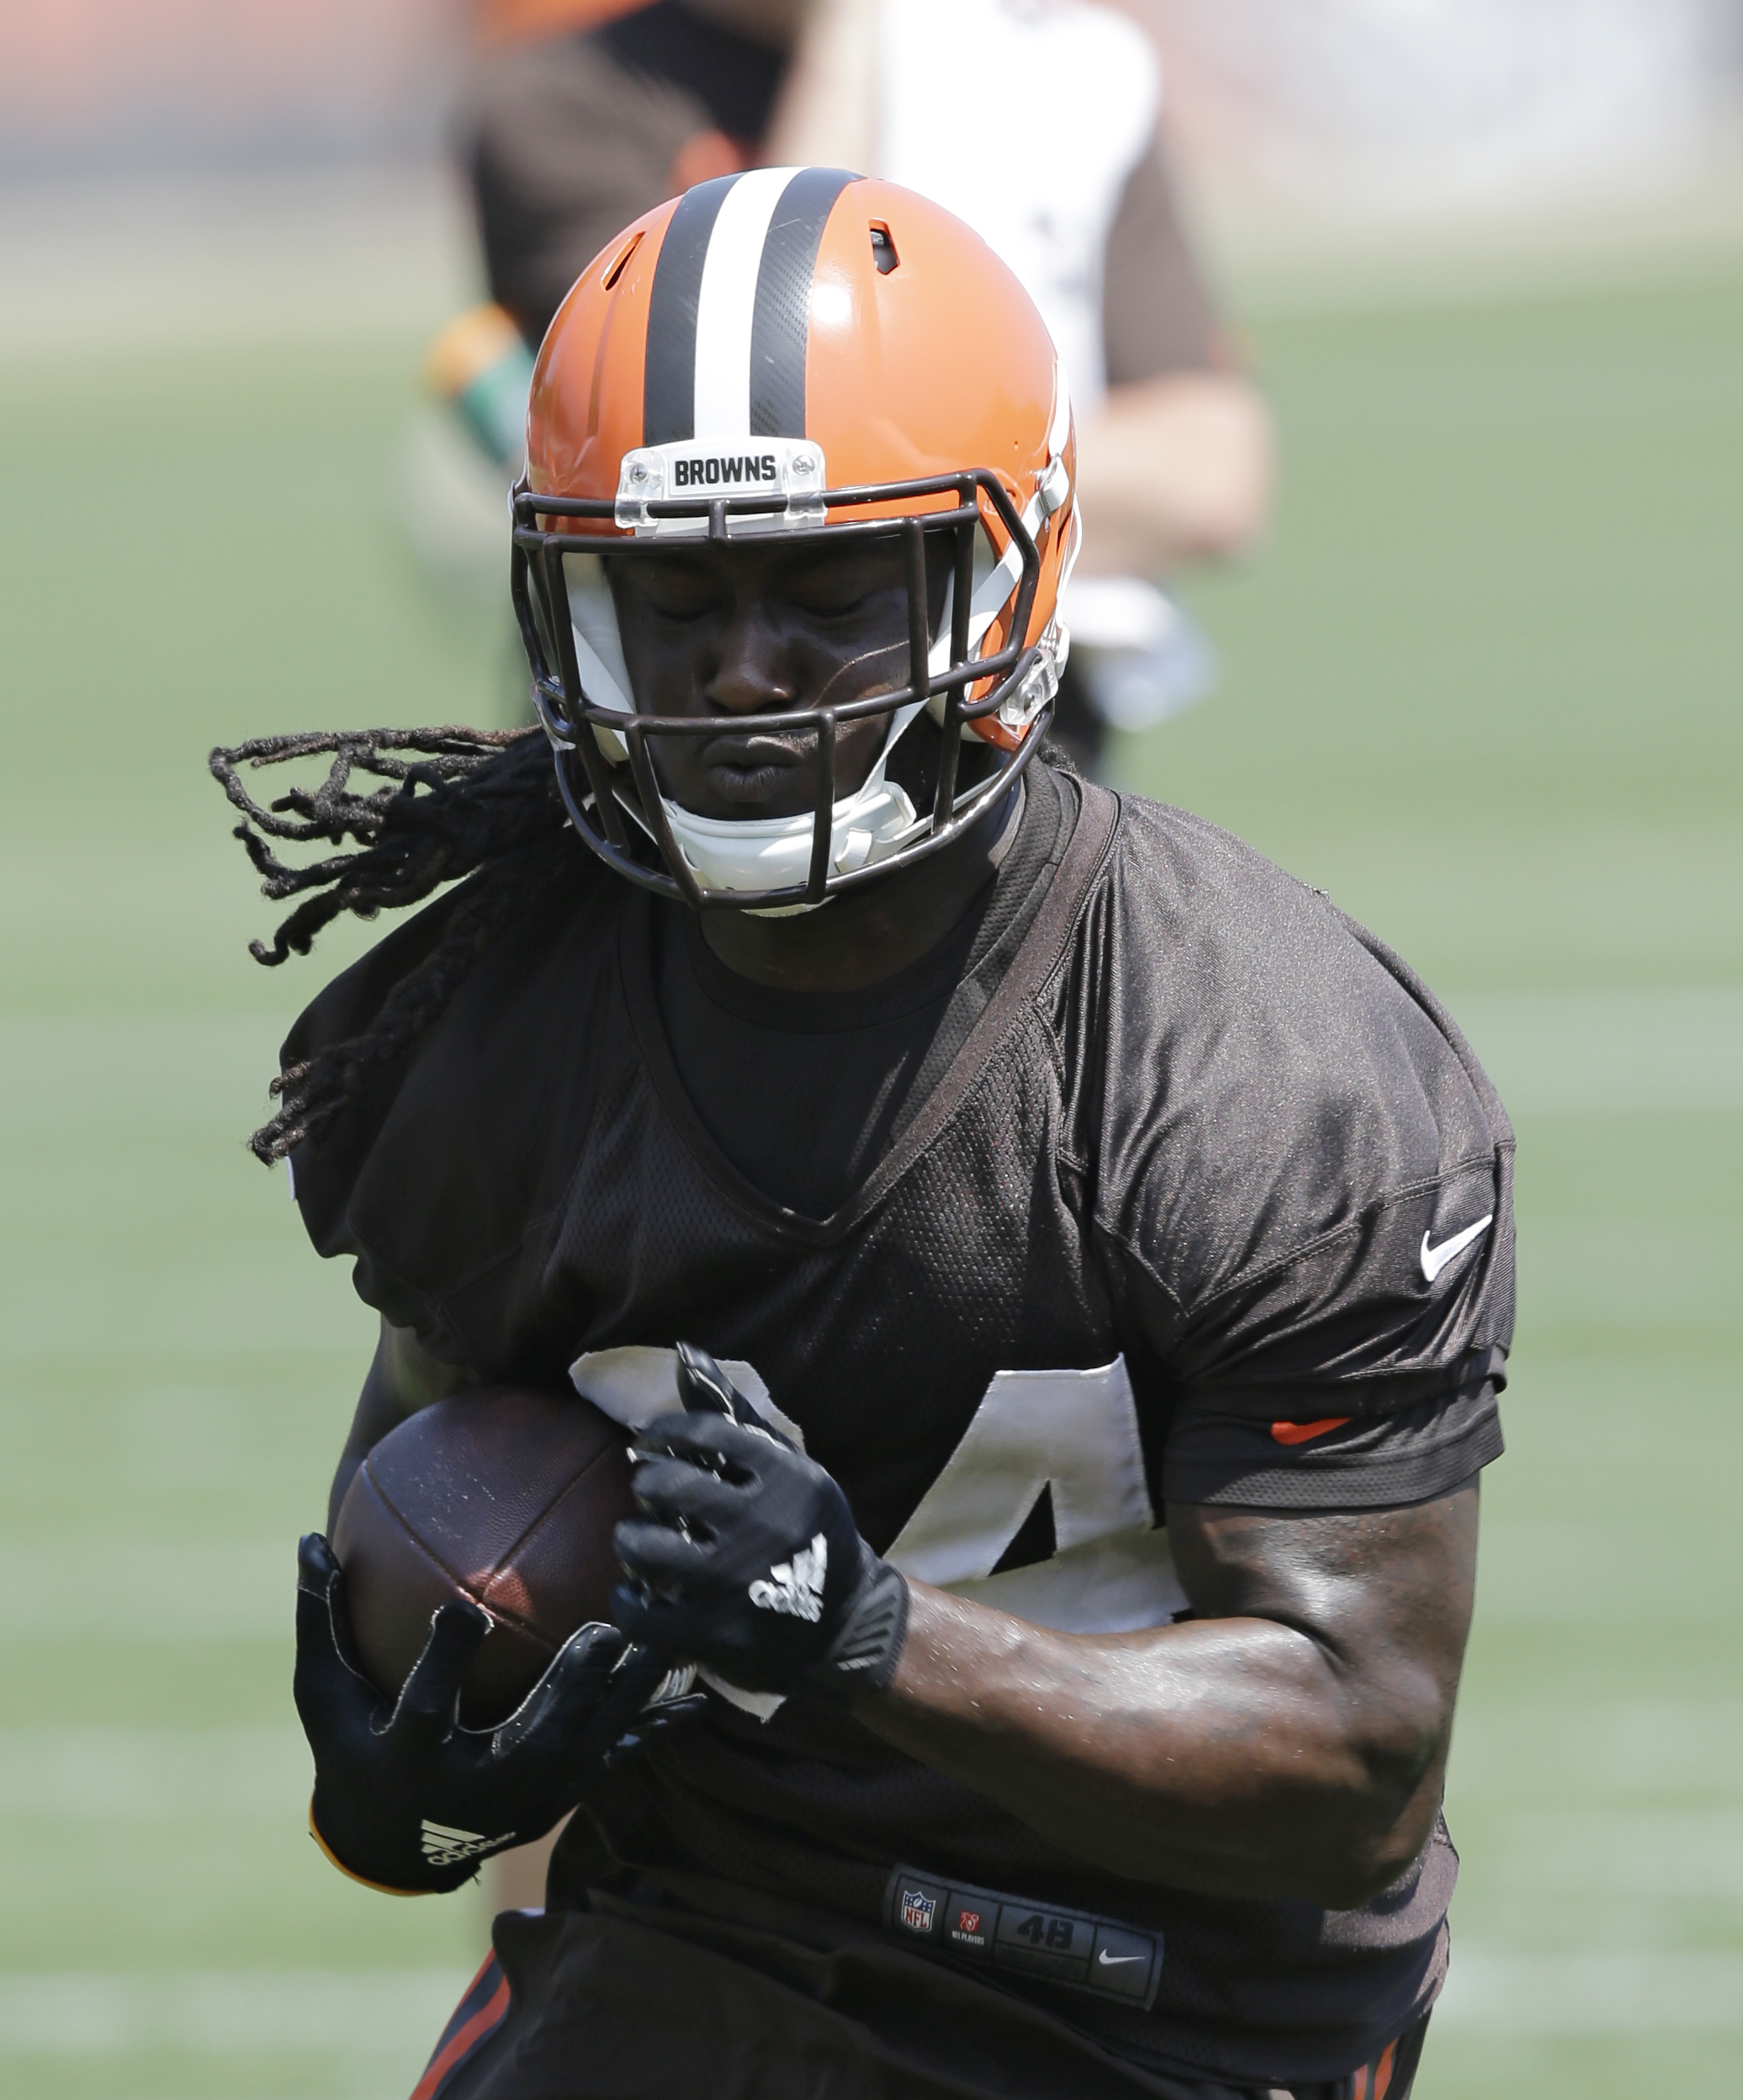 Cleveland Browns running back Isaiah Crowell runs the ball during practice at the NFL football team's training camp facility, Wednesday, June 1, 2016, in Berea, Ohio. (AP Photo/Tony Dejak)